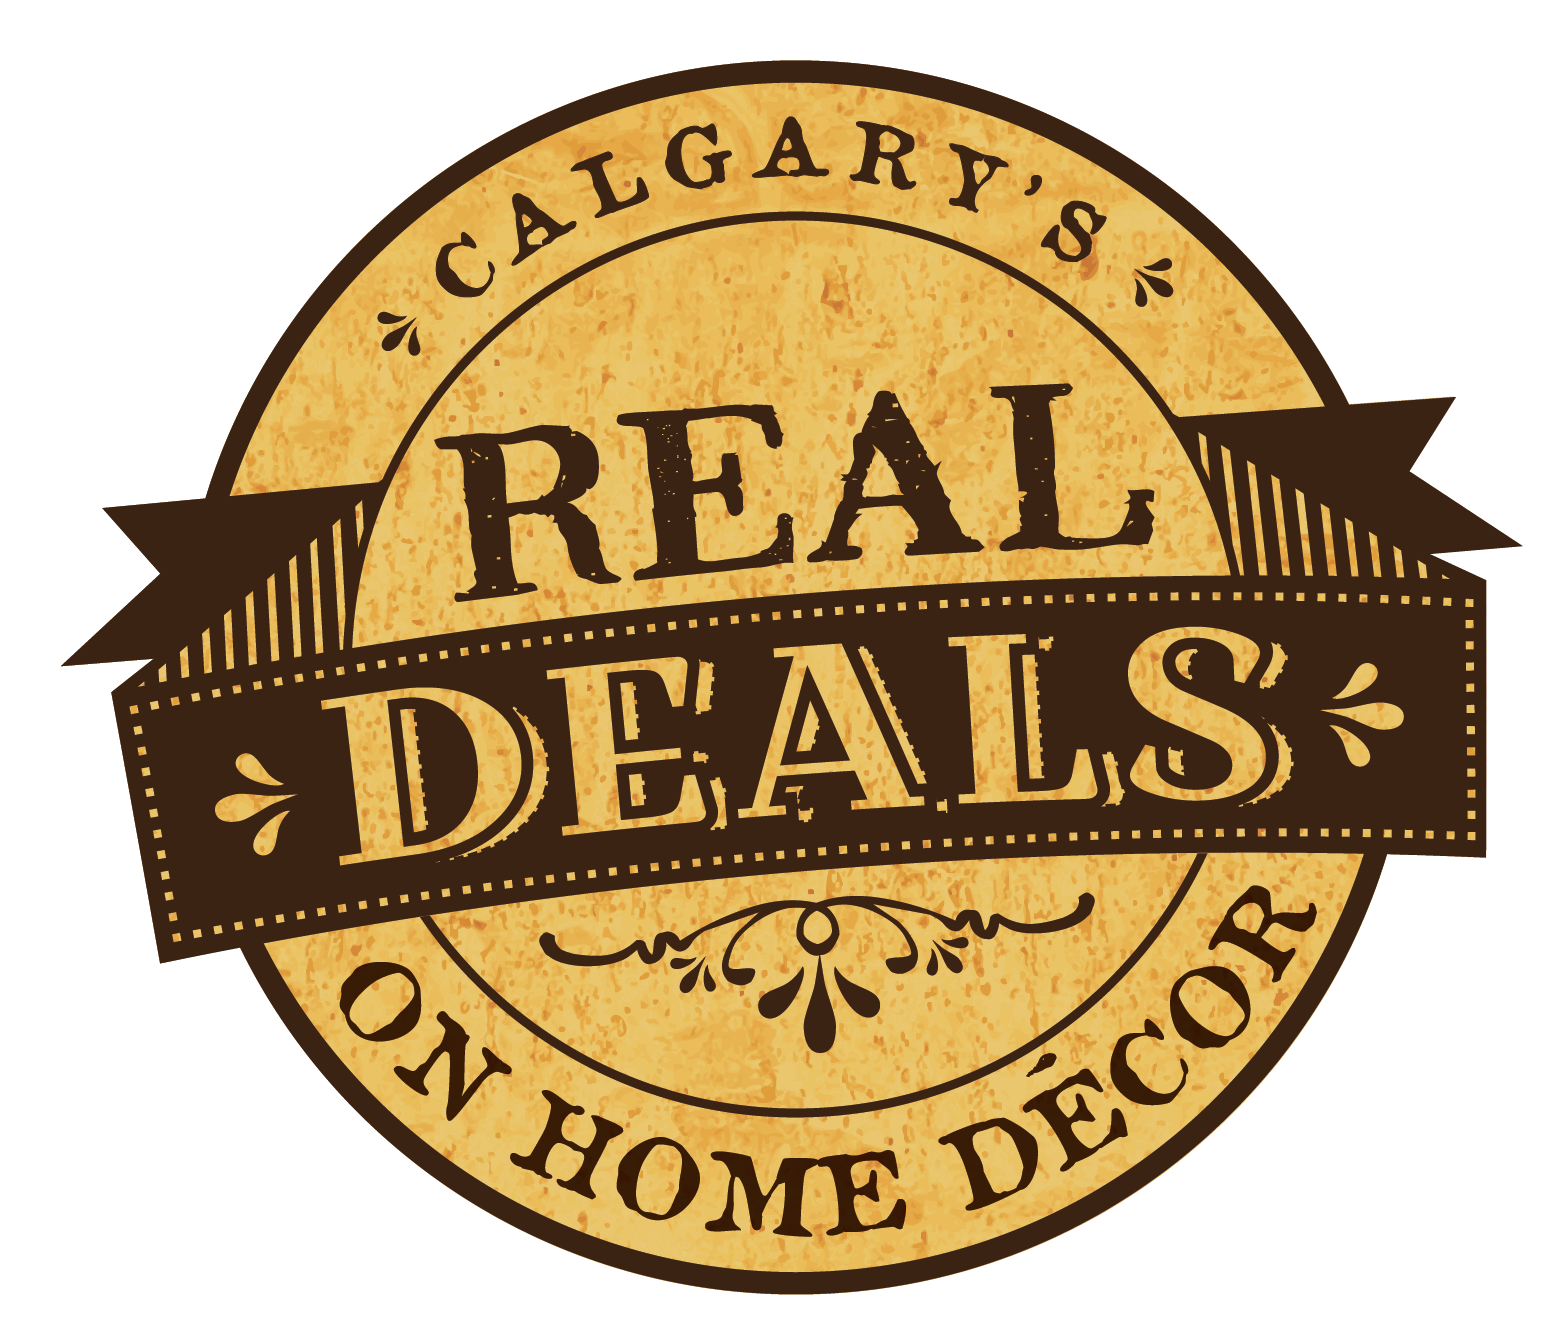 real deals on home decor my city and state - Home Decor Calgary